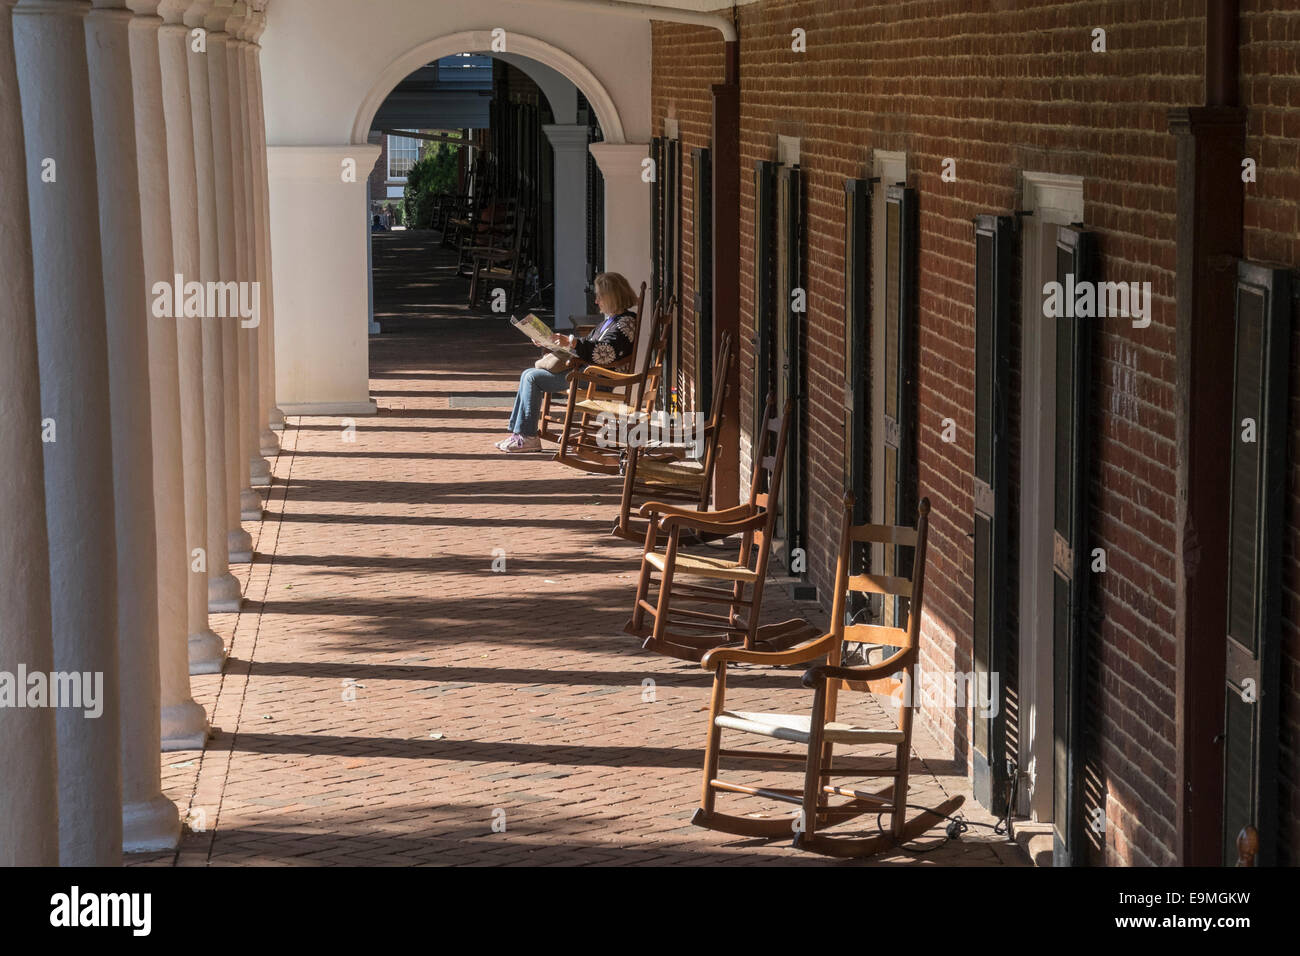 United States, Virginia, Albemarie County, Charlottesville, University of Virginia, dormitory designed by Thomas - Stock Image